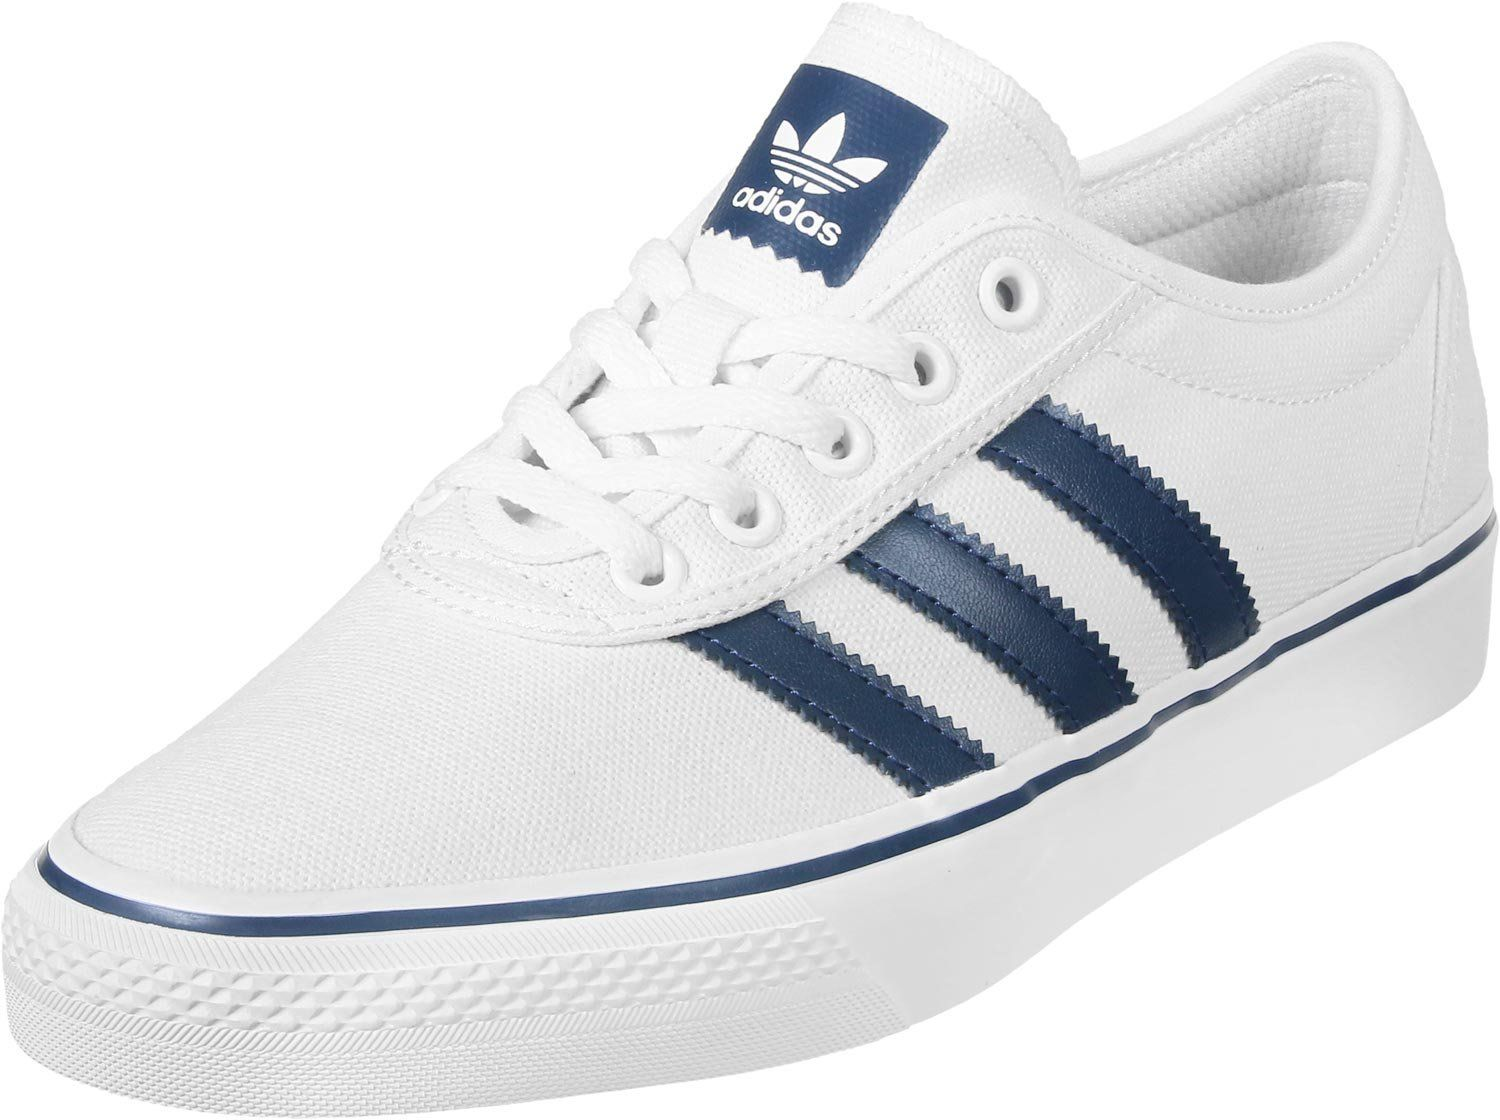 pretty nice 5f8d9 fb027 Adidas AdiEase Chaussures Sportives pour Hommes. ADIDAS CAMPUS W sneakers  scarpe donna Marrone NUOVO, ADIDAS Originals Superstar Unisex Scarpa Da  Ginnastica ...